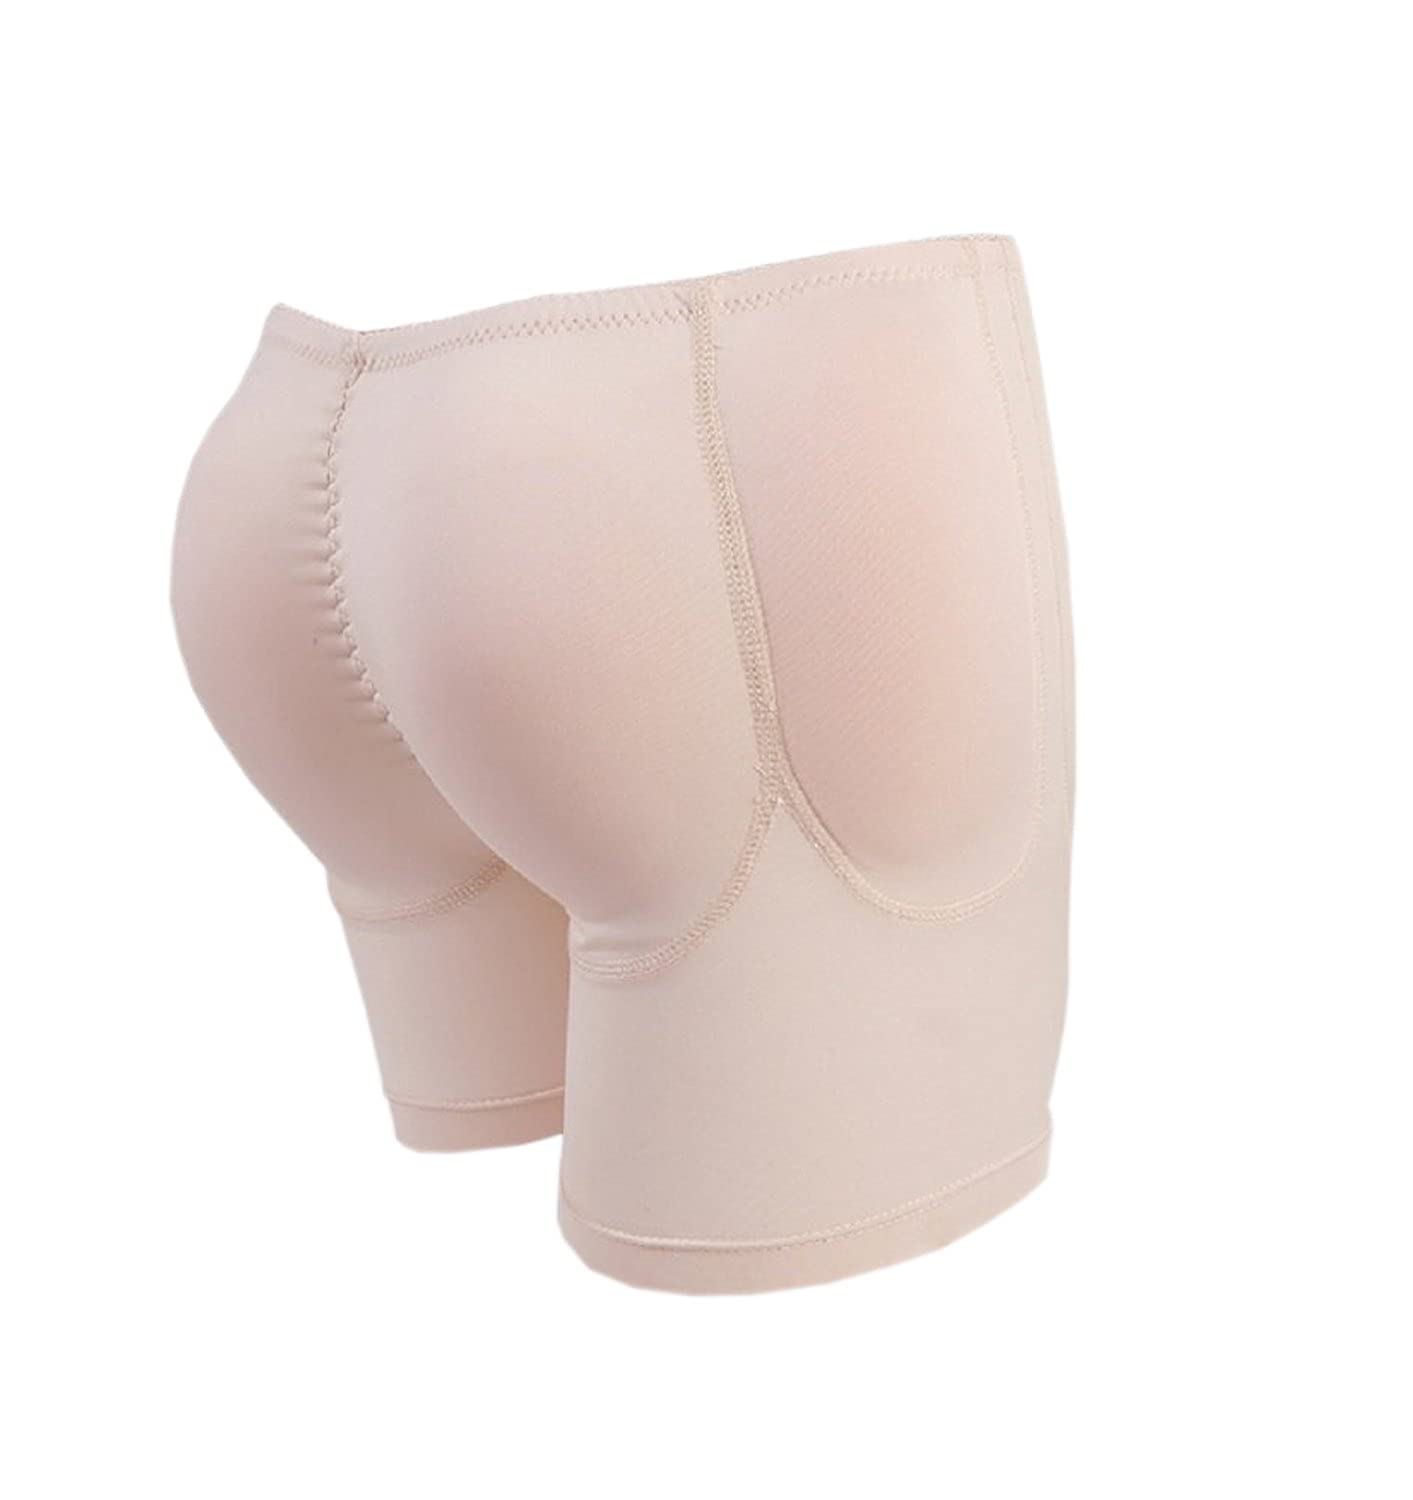 OULI Silicone Padded Rear Butt Hips Enhancer Shaper Girdle Underwear Crossdresser kaufen